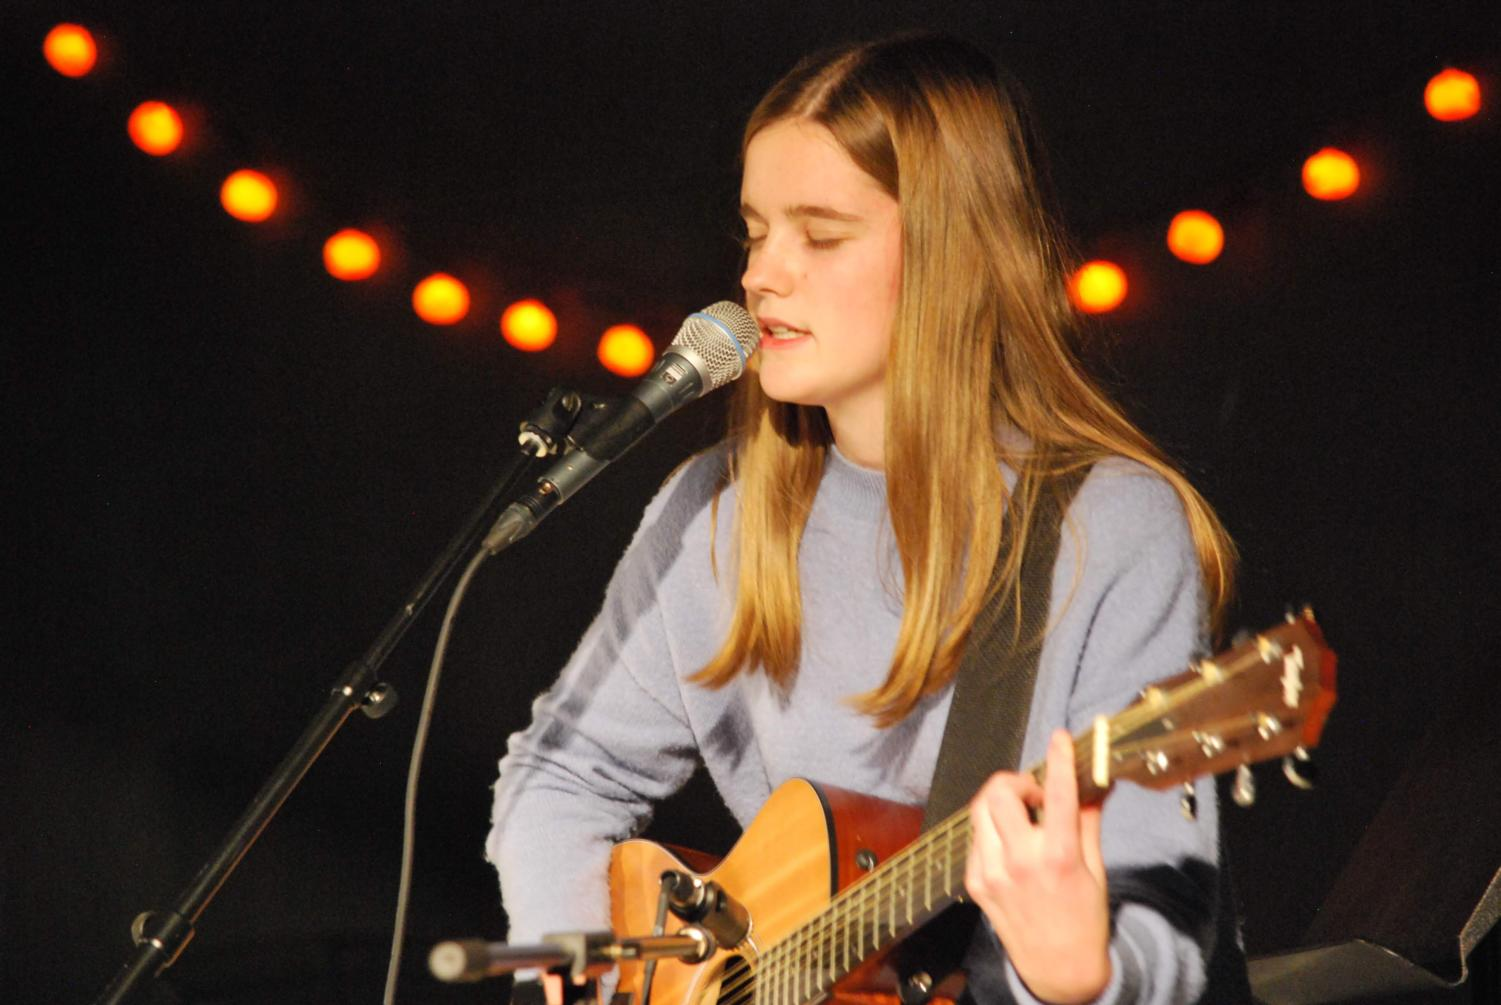 Allison Keeley '20 sings an original song  and plays guitar at Monster Bash (Janik/LION).